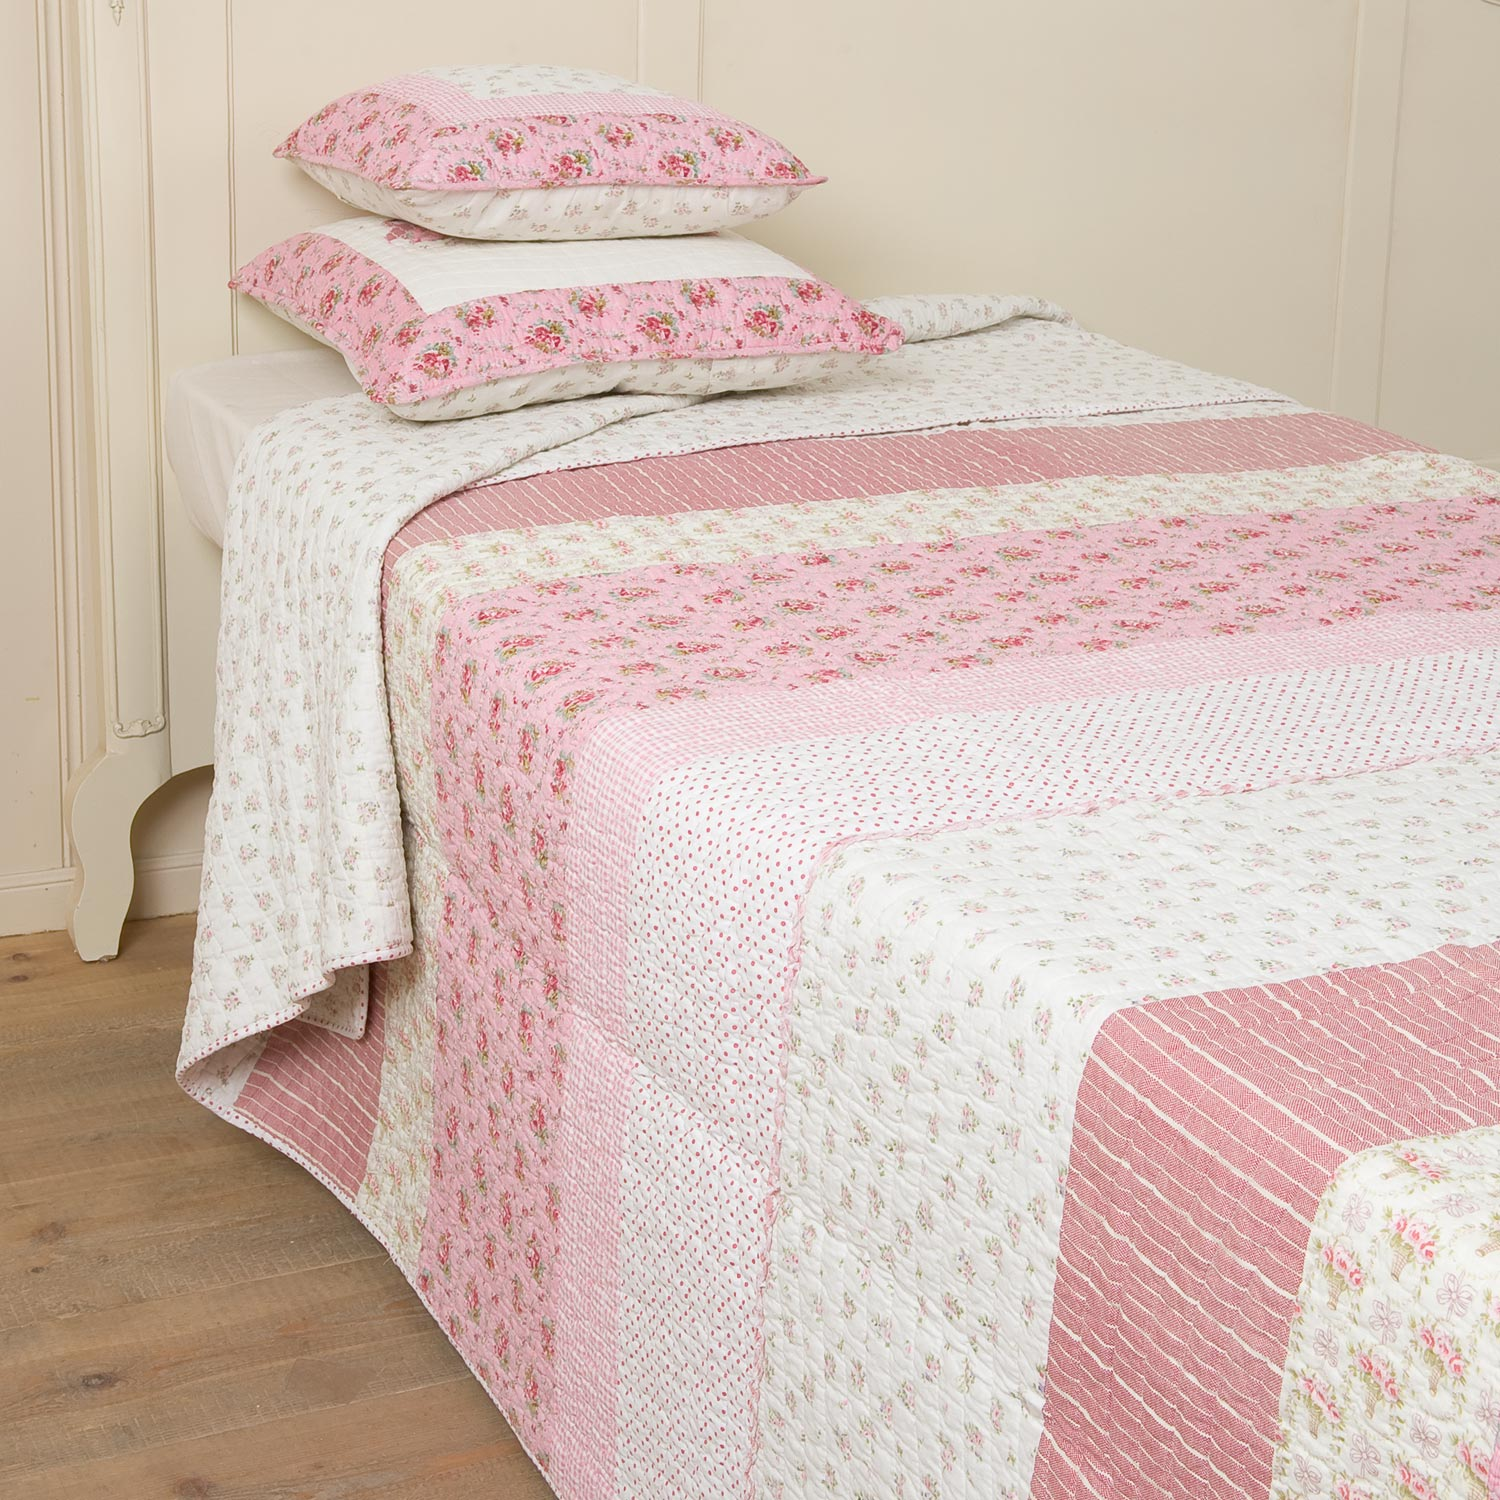 clayre eef tagesdecke quilt plaid matroschka pink rosa. Black Bedroom Furniture Sets. Home Design Ideas